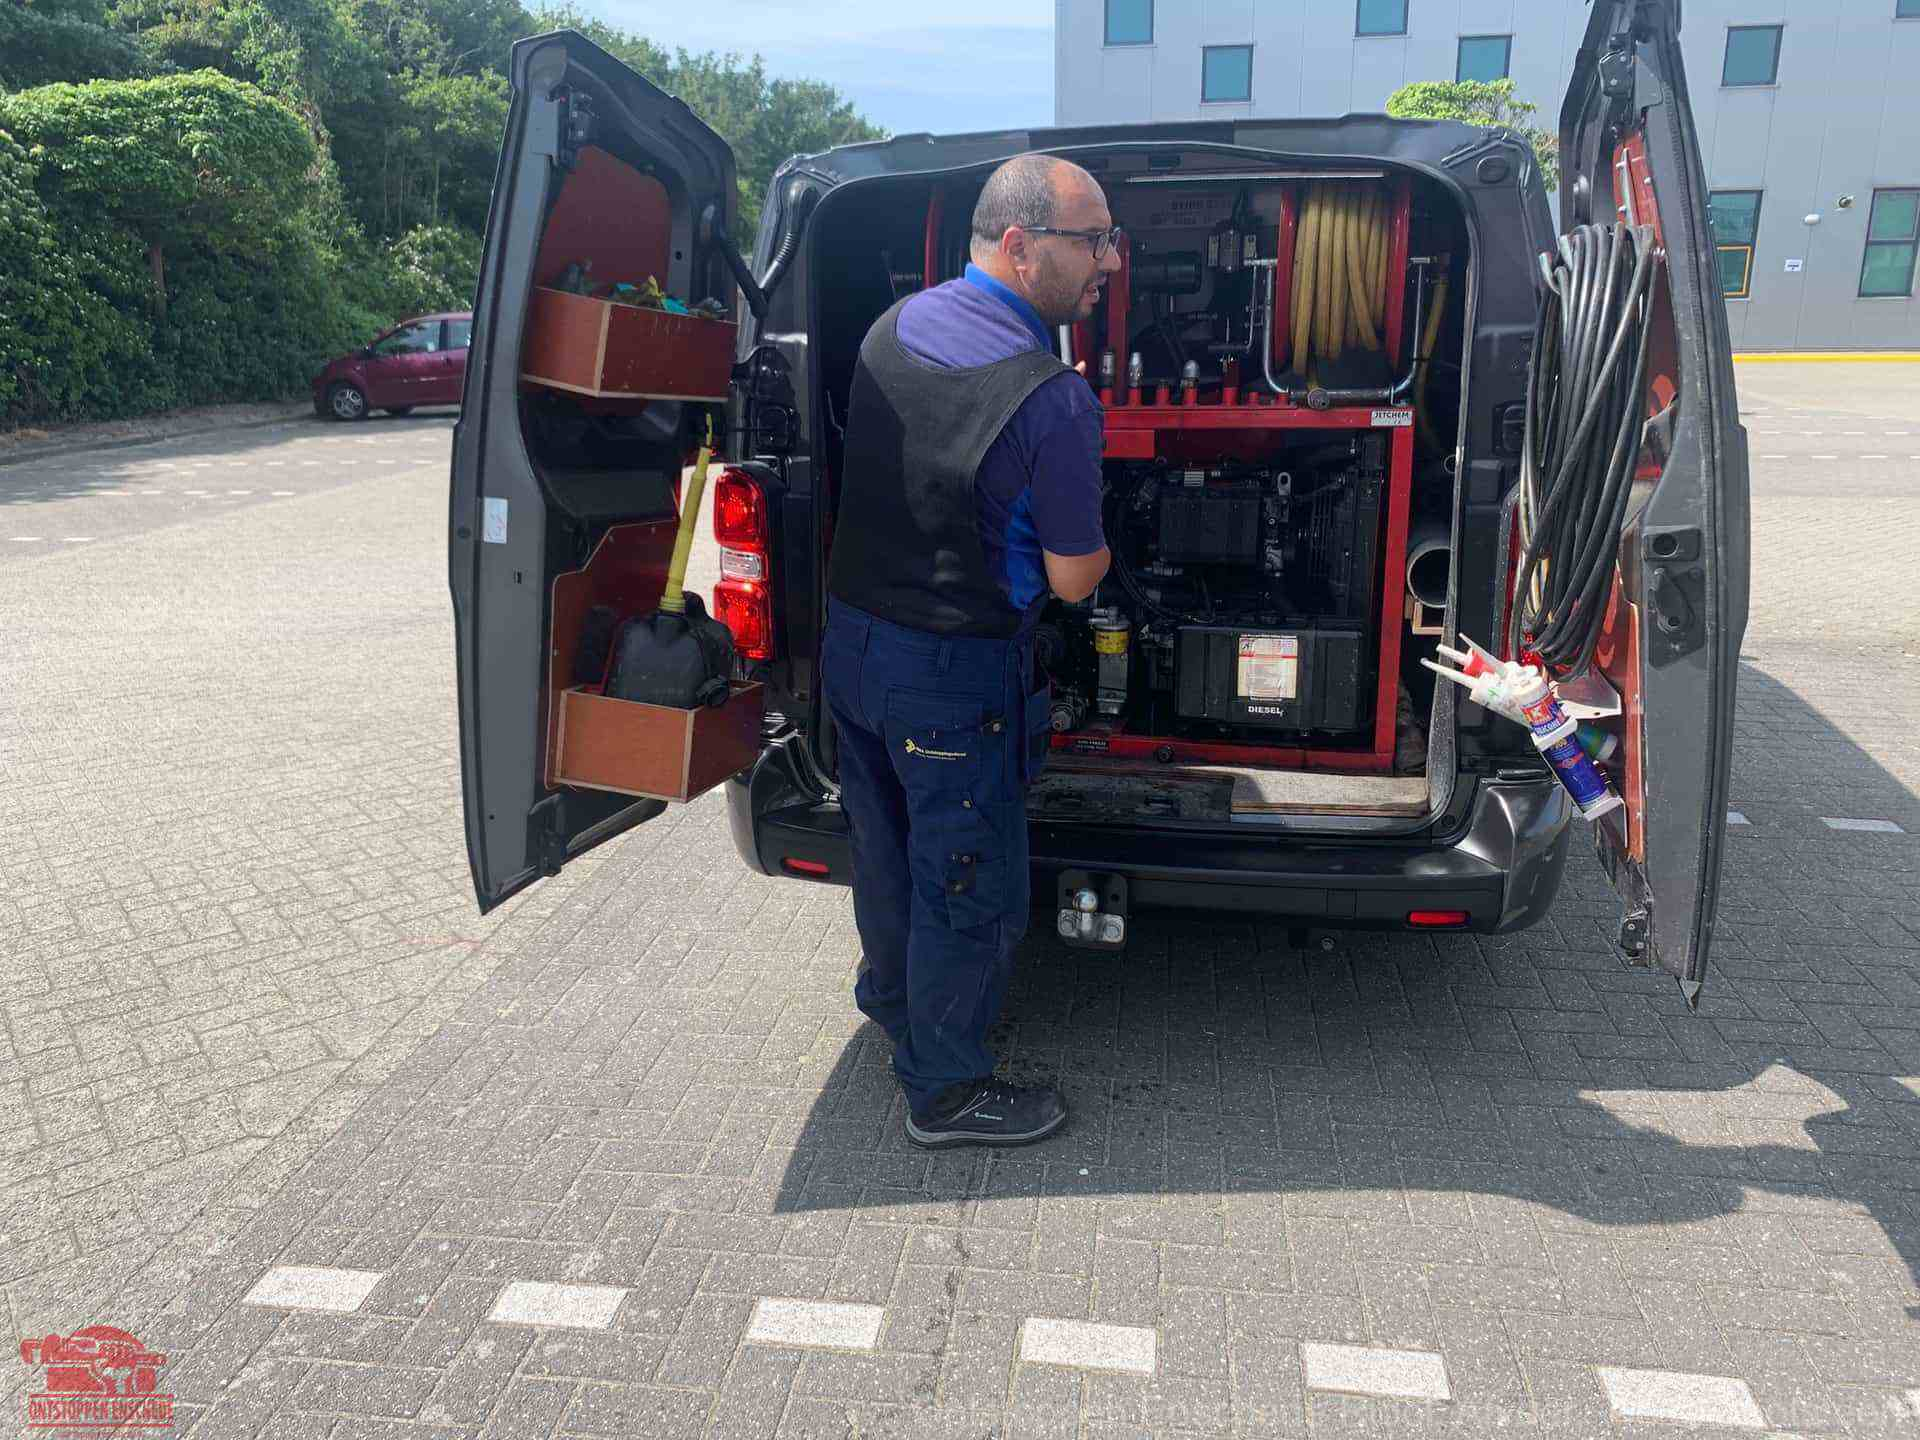 Loodgieter Enschede Ontstopping